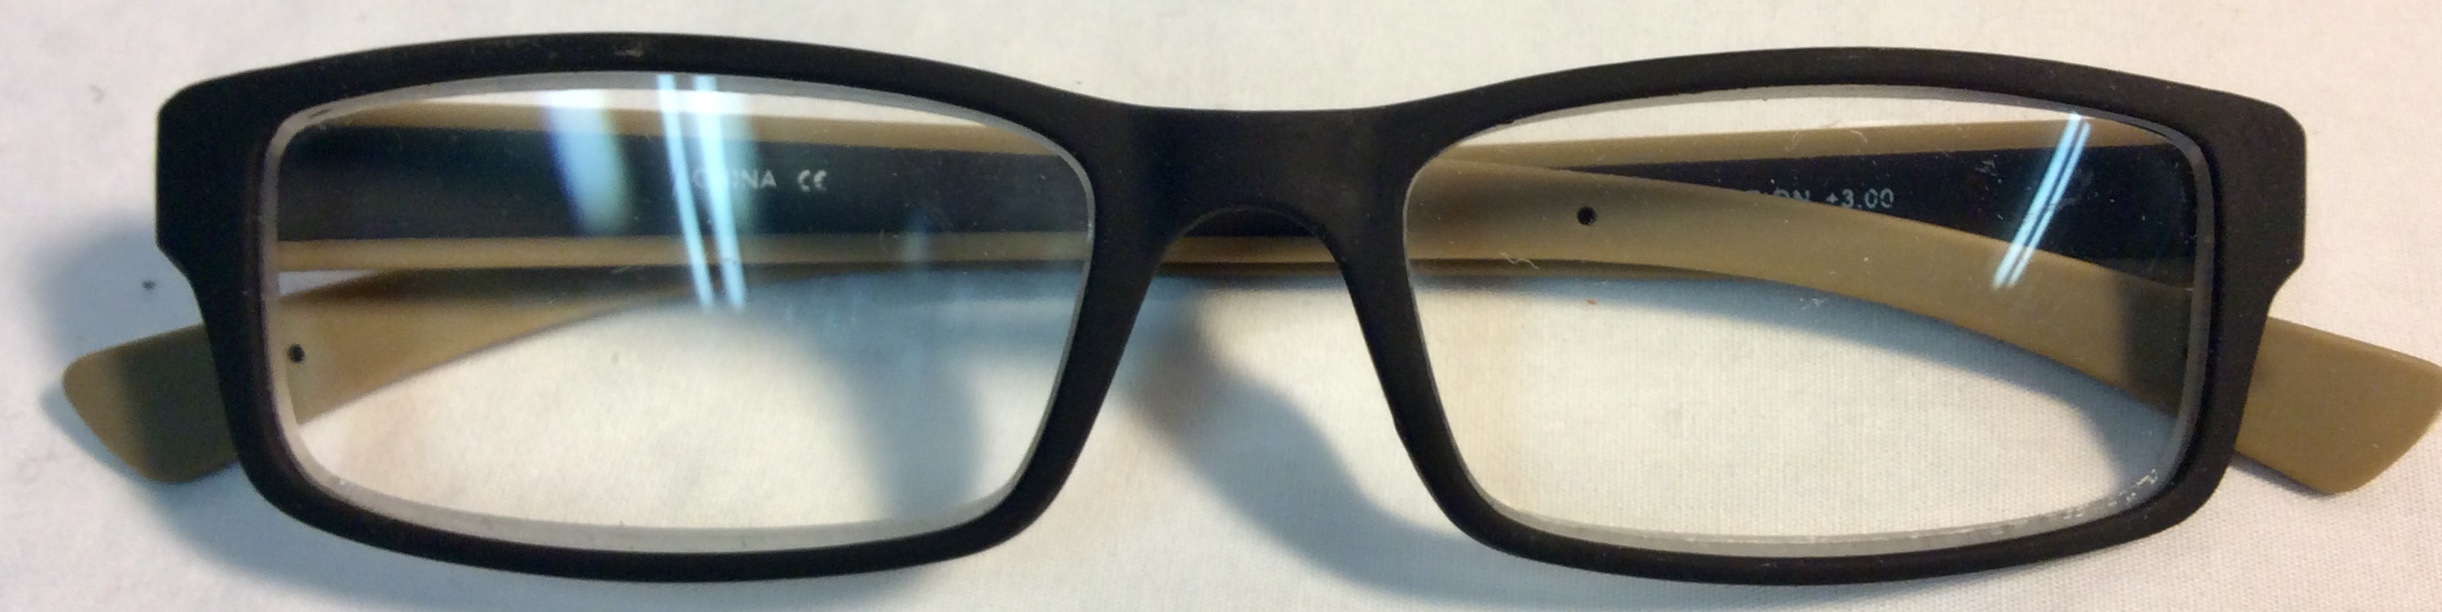 Rubbery black and brown square frame